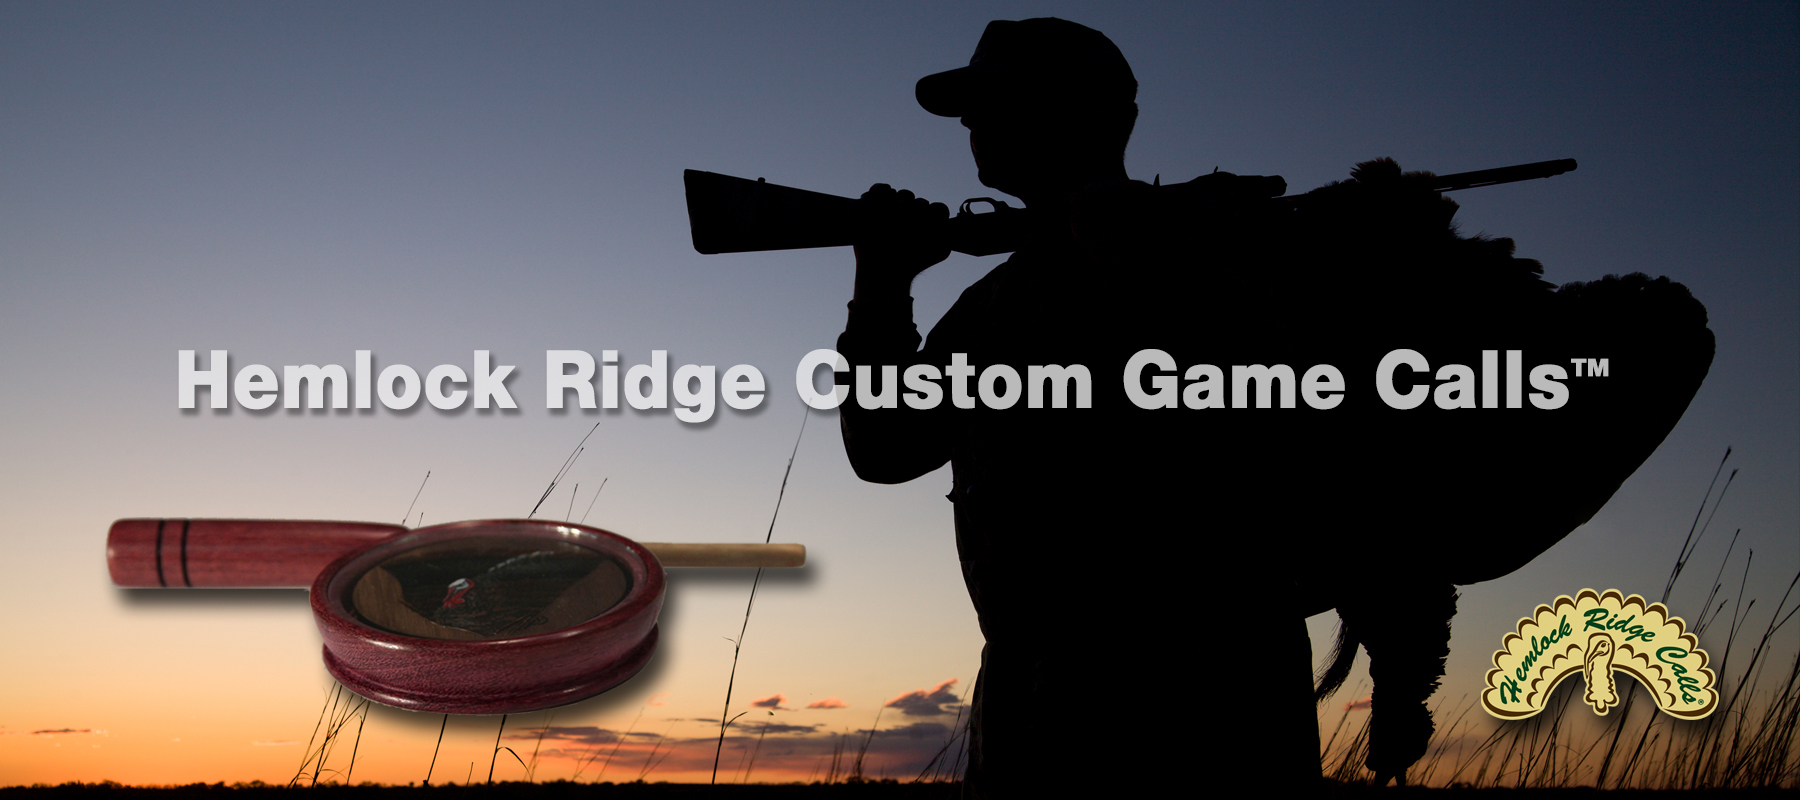 Hemlock Ridge Custom Game Calls